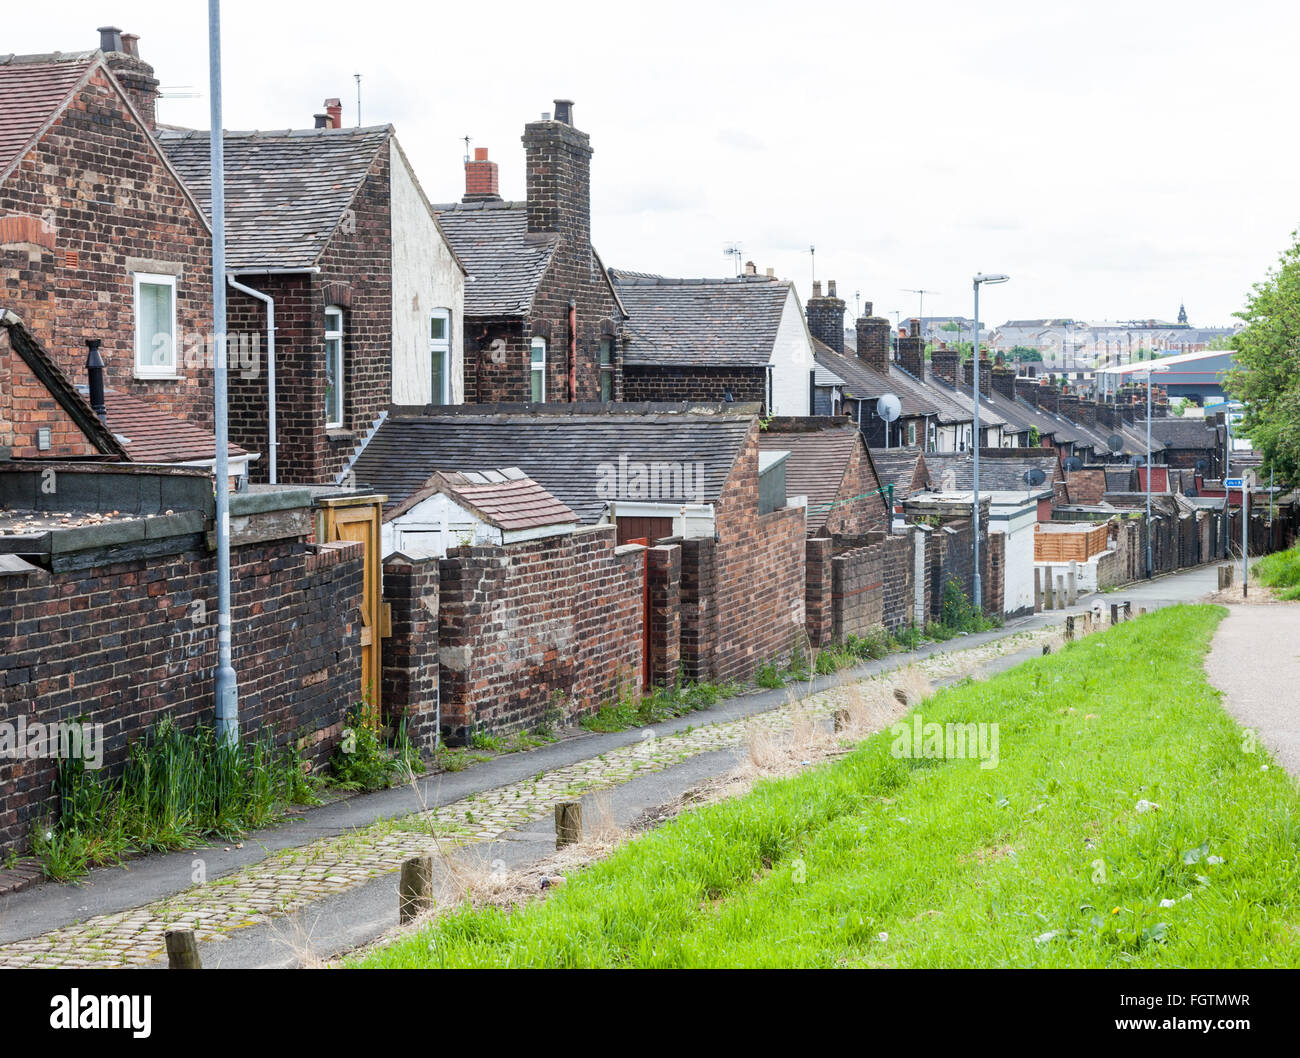 The backs at the rear of Terraced housing in Stoke on Trent Staffordshire England UK - Stock Image